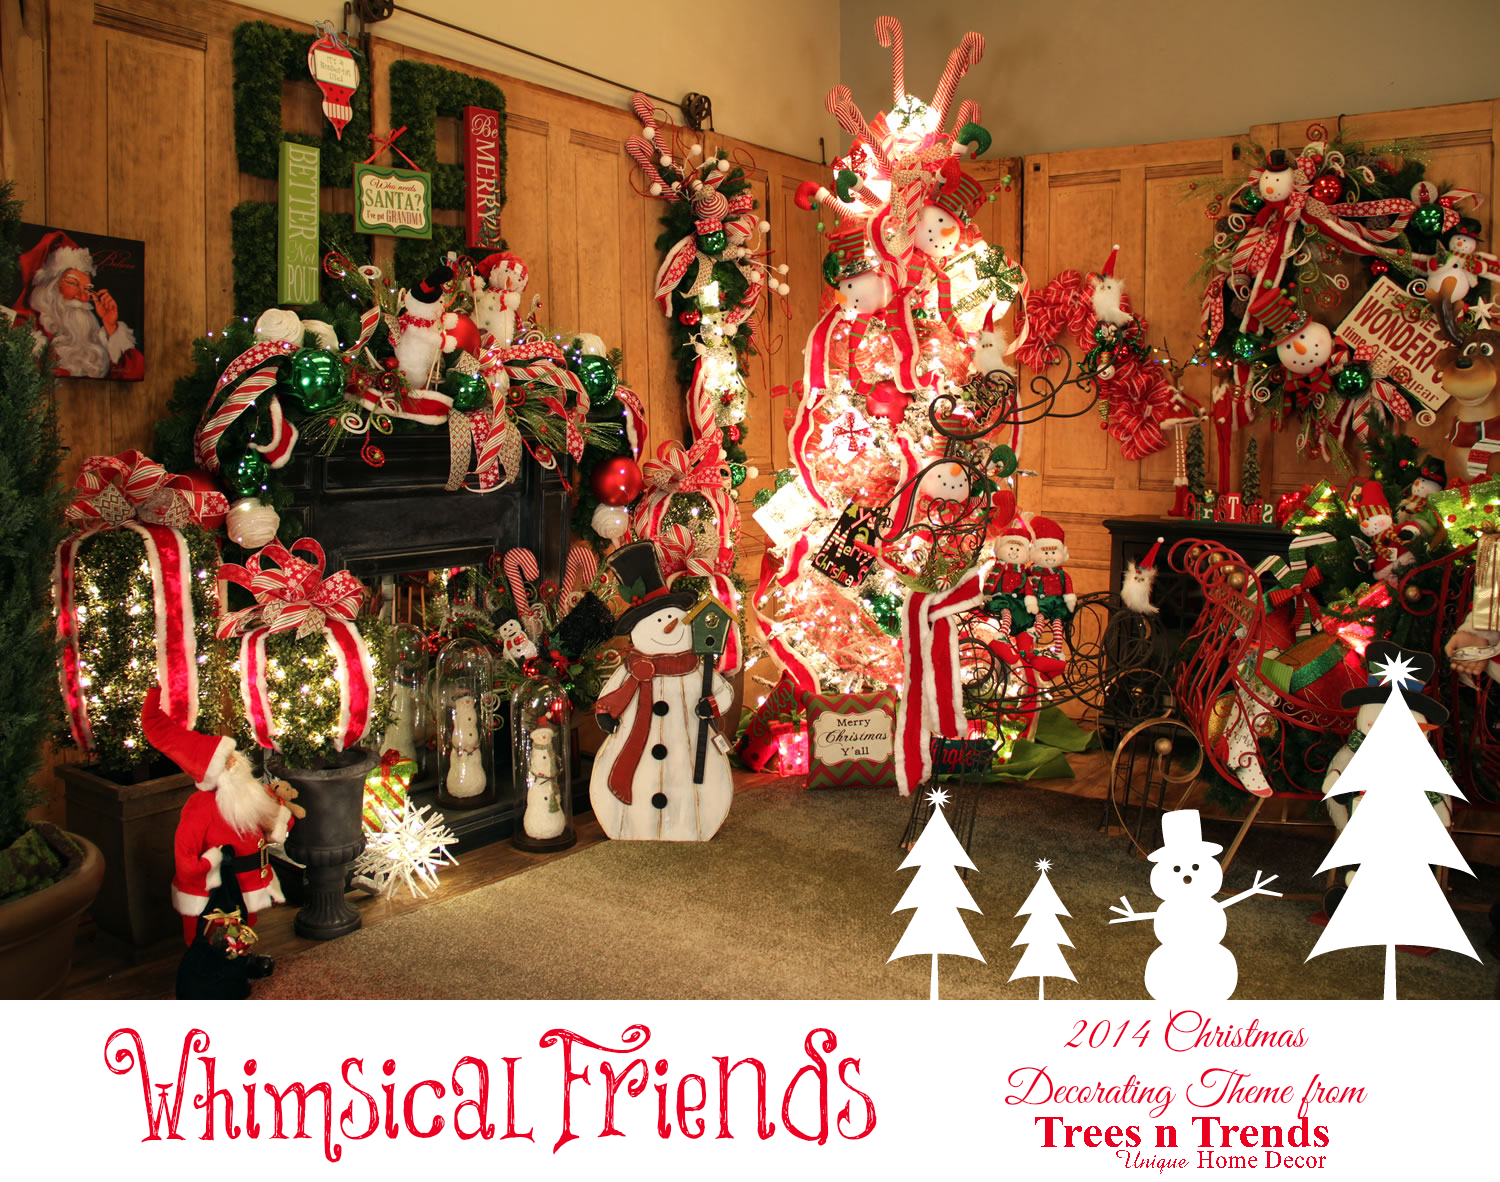 Christmas tree 2014 decorating trends -  Whimsical Friends For So Many Families Christmas Is For The Children Whimsical Friends Is A Christmas Decorating Theme Inspired By The Youngest Members